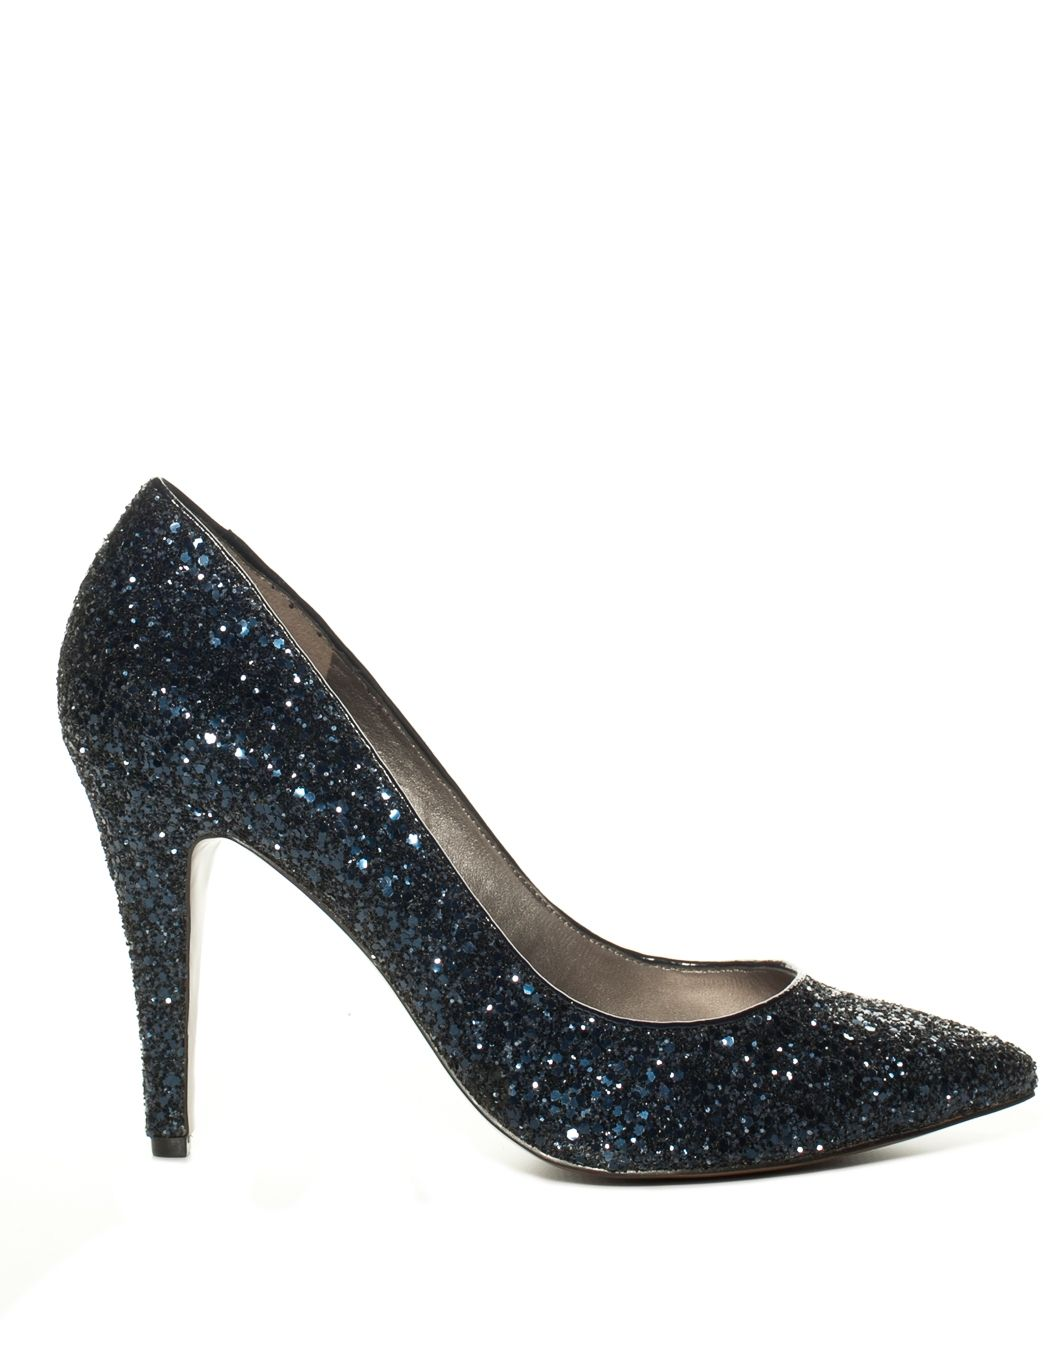 The Limited - Glitter Pumps: $58.80